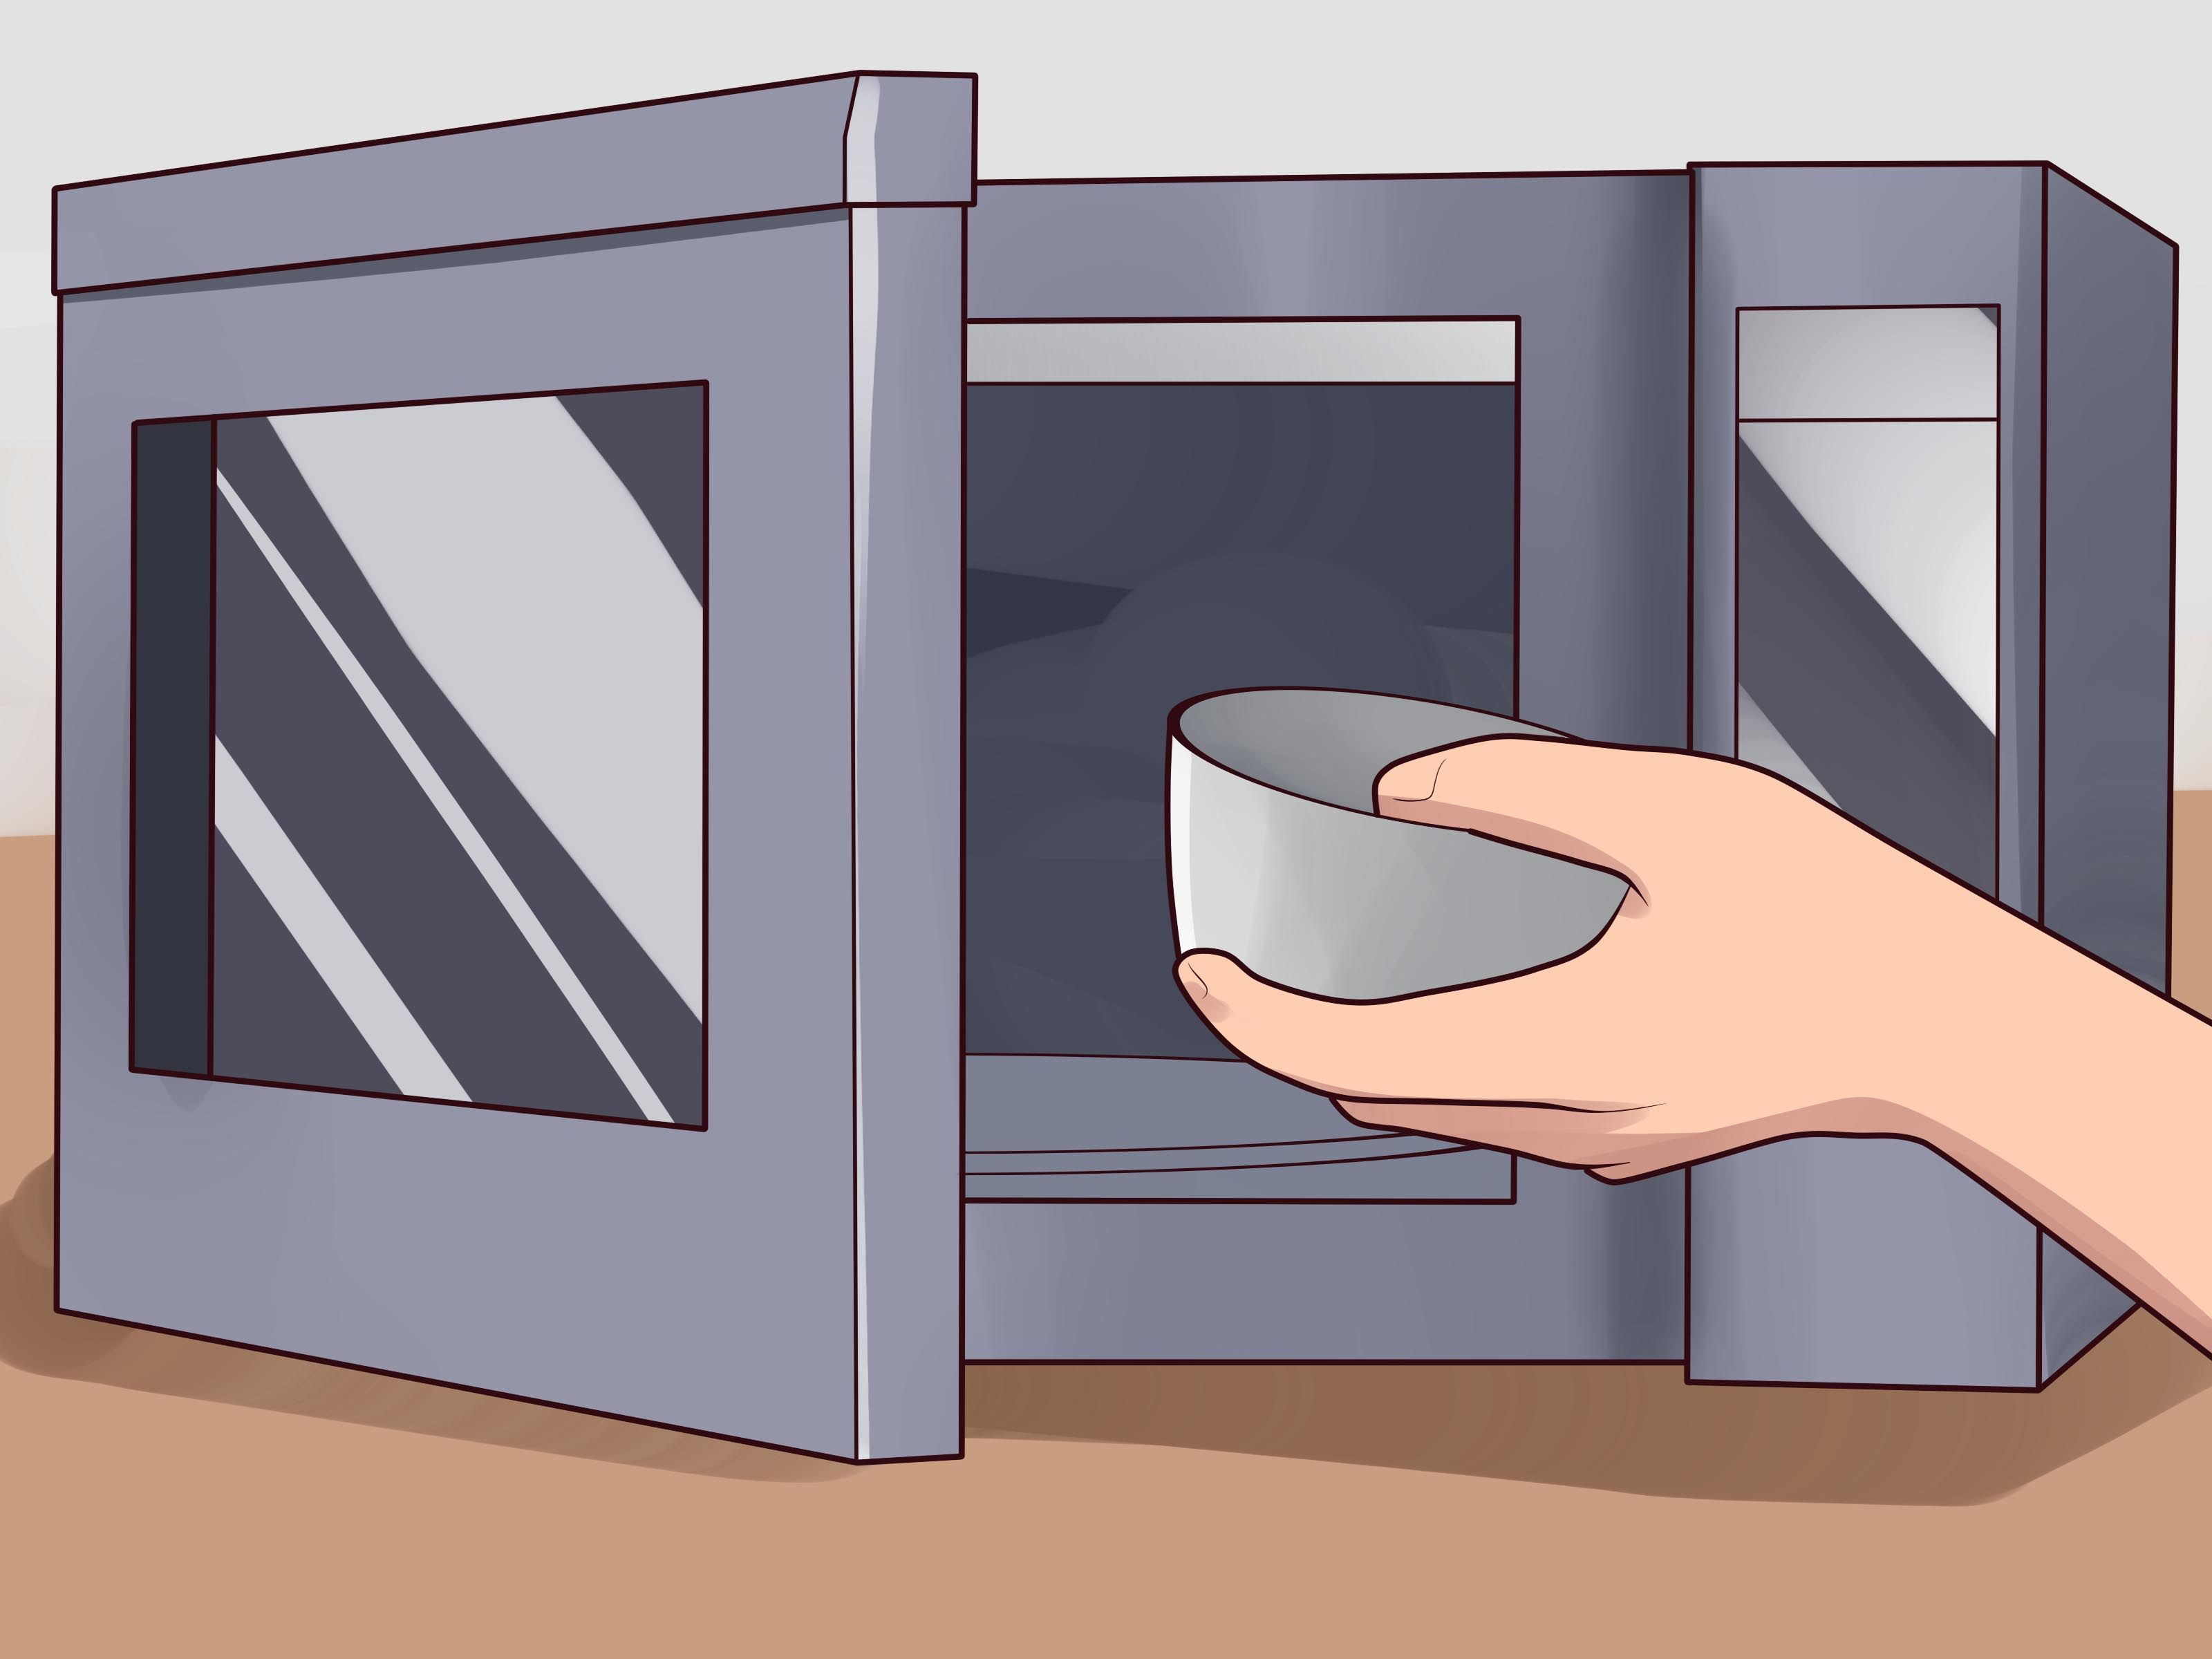 How to get bad smells out of a microwave microwave smell